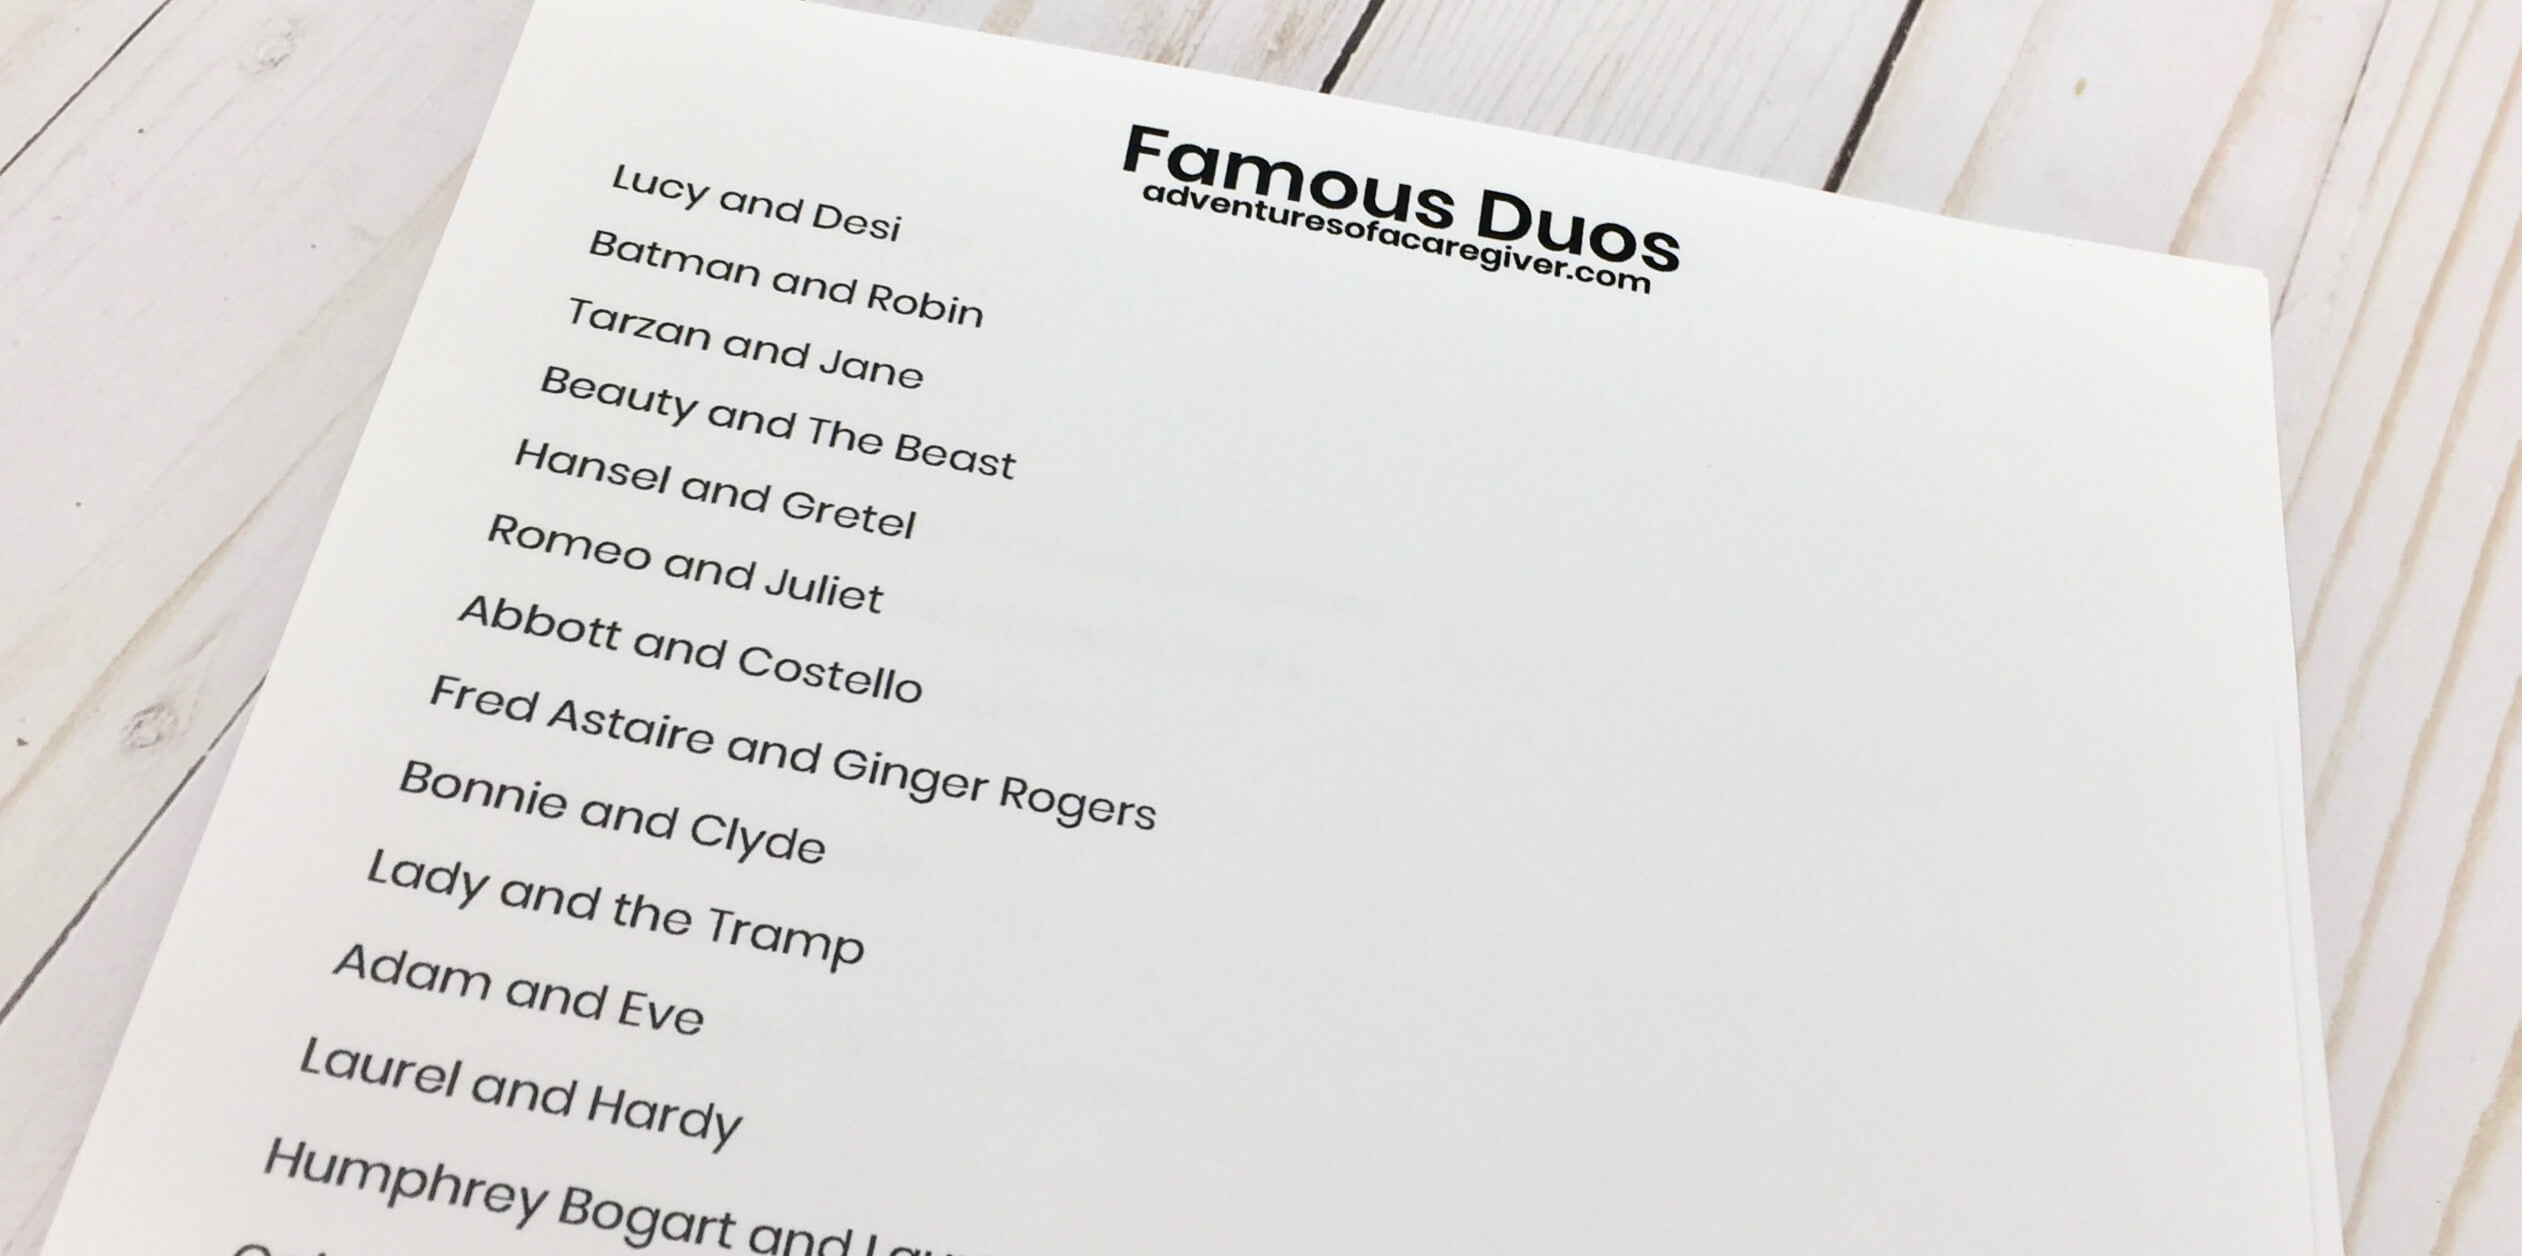 Famous Duos activity created for Alzheimer's and dementia patients